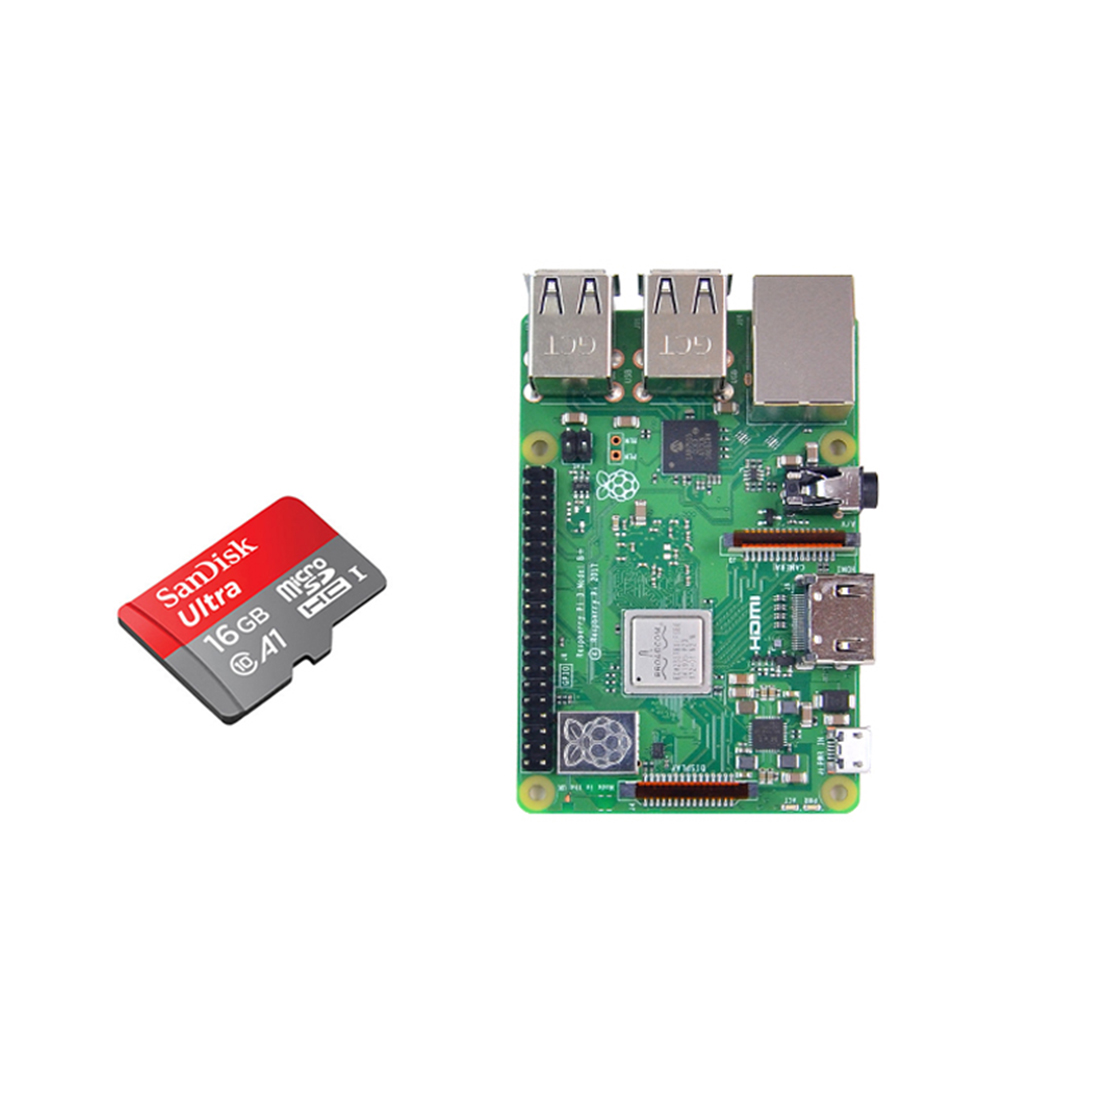 MODIKER Development Board With 16G Memory Card For Raspberry Pi 4 (1G OR 2G Running Memory)